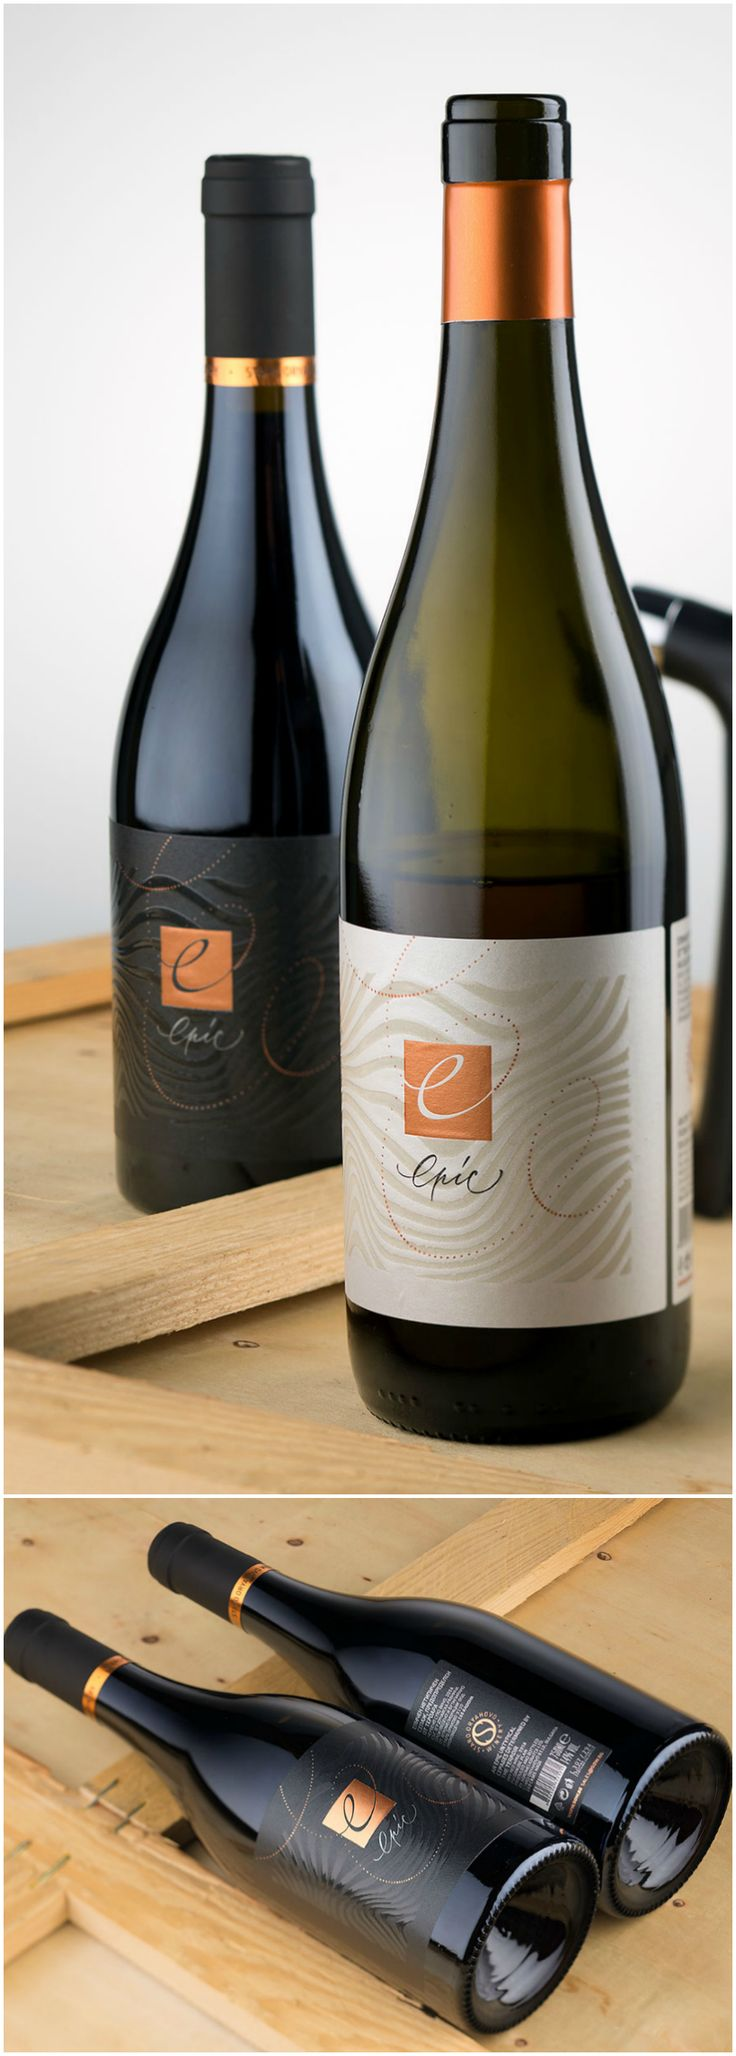 Design Agency:the Labelmaker Brand / Project Name:modern wine label 42 Shares 12 Epic  Location: Bulgaria Category: #wine #drink